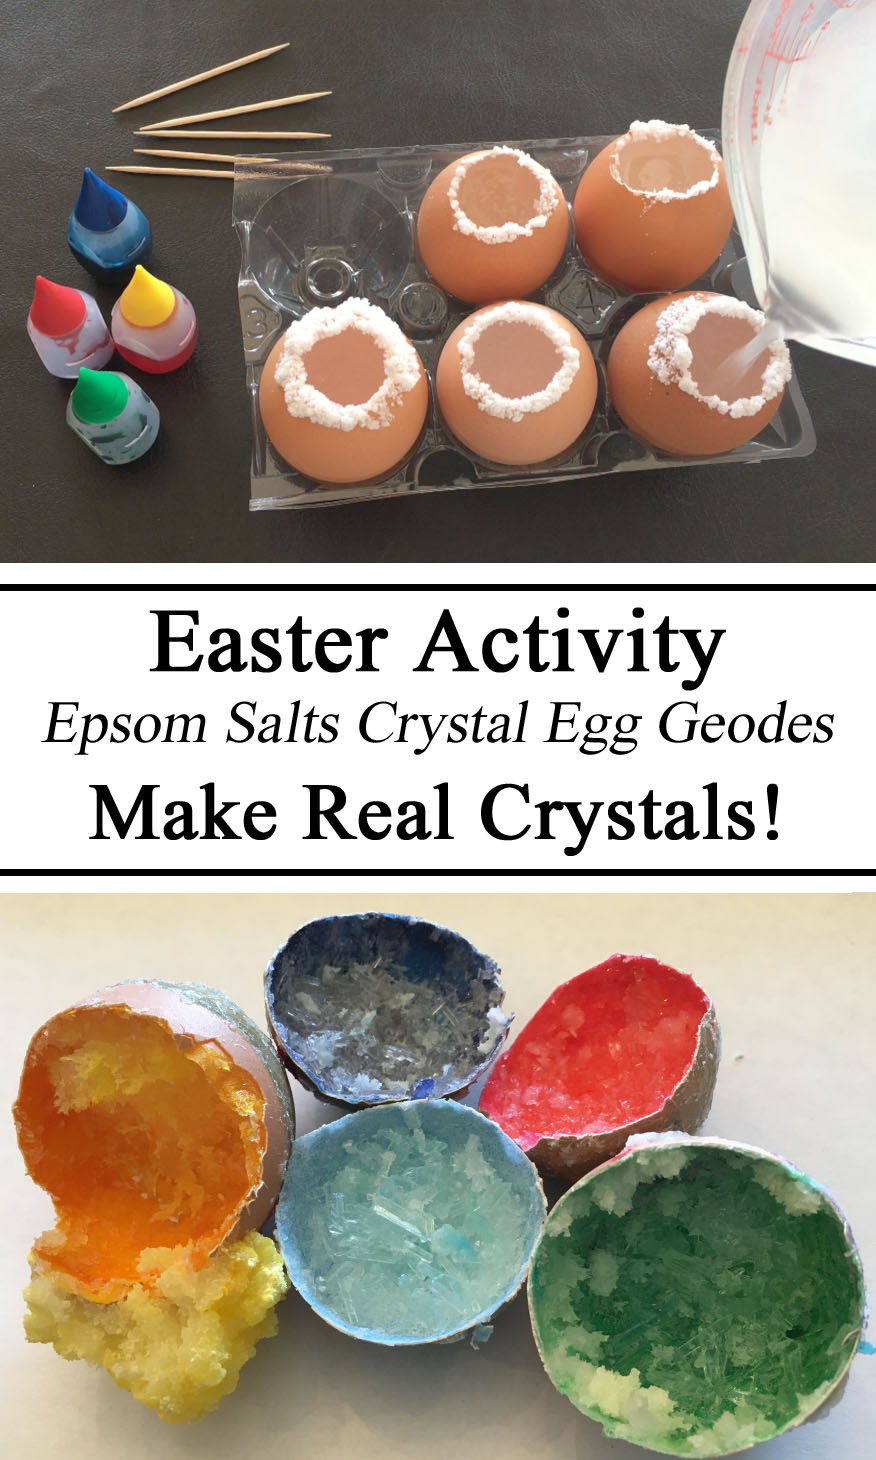 Science for Kids, Crystals, Egg Crystal, Epsom Salts Crystals, STEM Challenge, Toddler, Preschool, Kindergarten, Homeschool, Homeschooling, Totschool, Early Childhood Education, Grow Crystals, DIY, Resources Parents